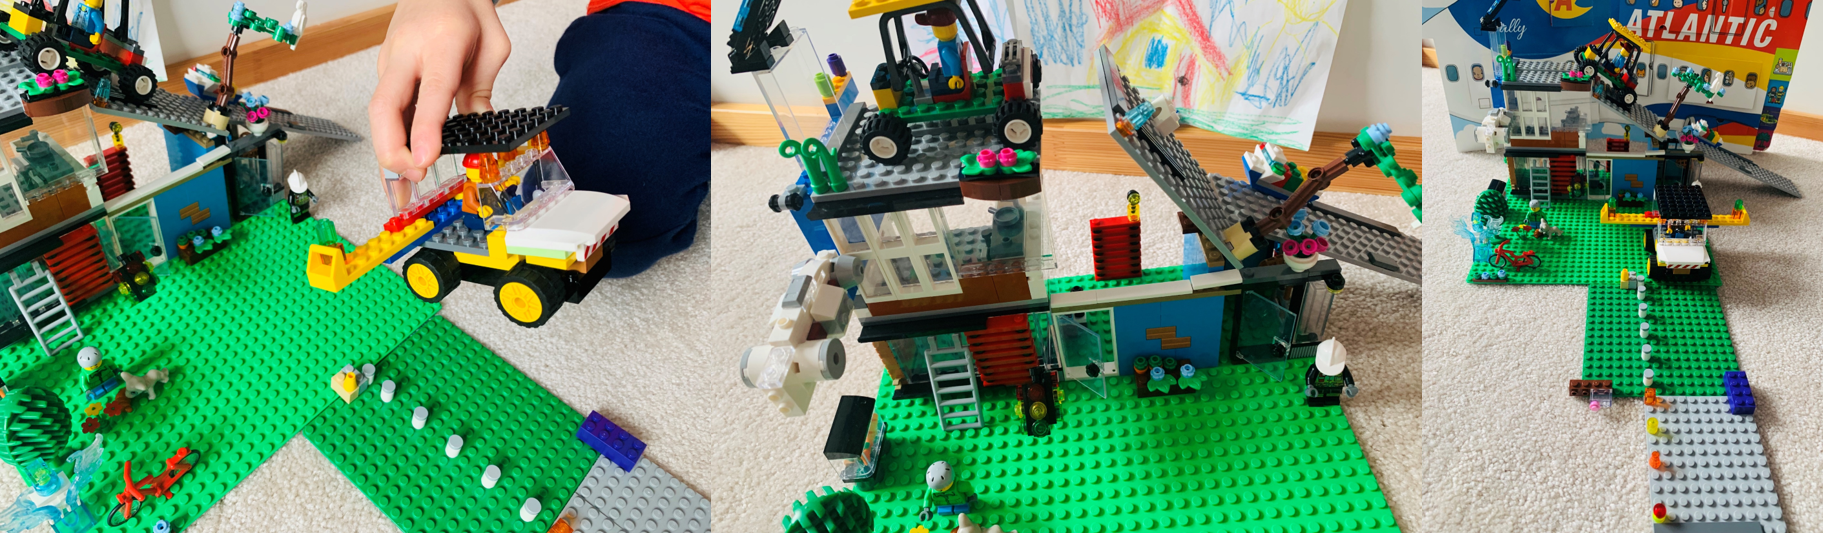 A collage of images depicting a child's LEGO® creation